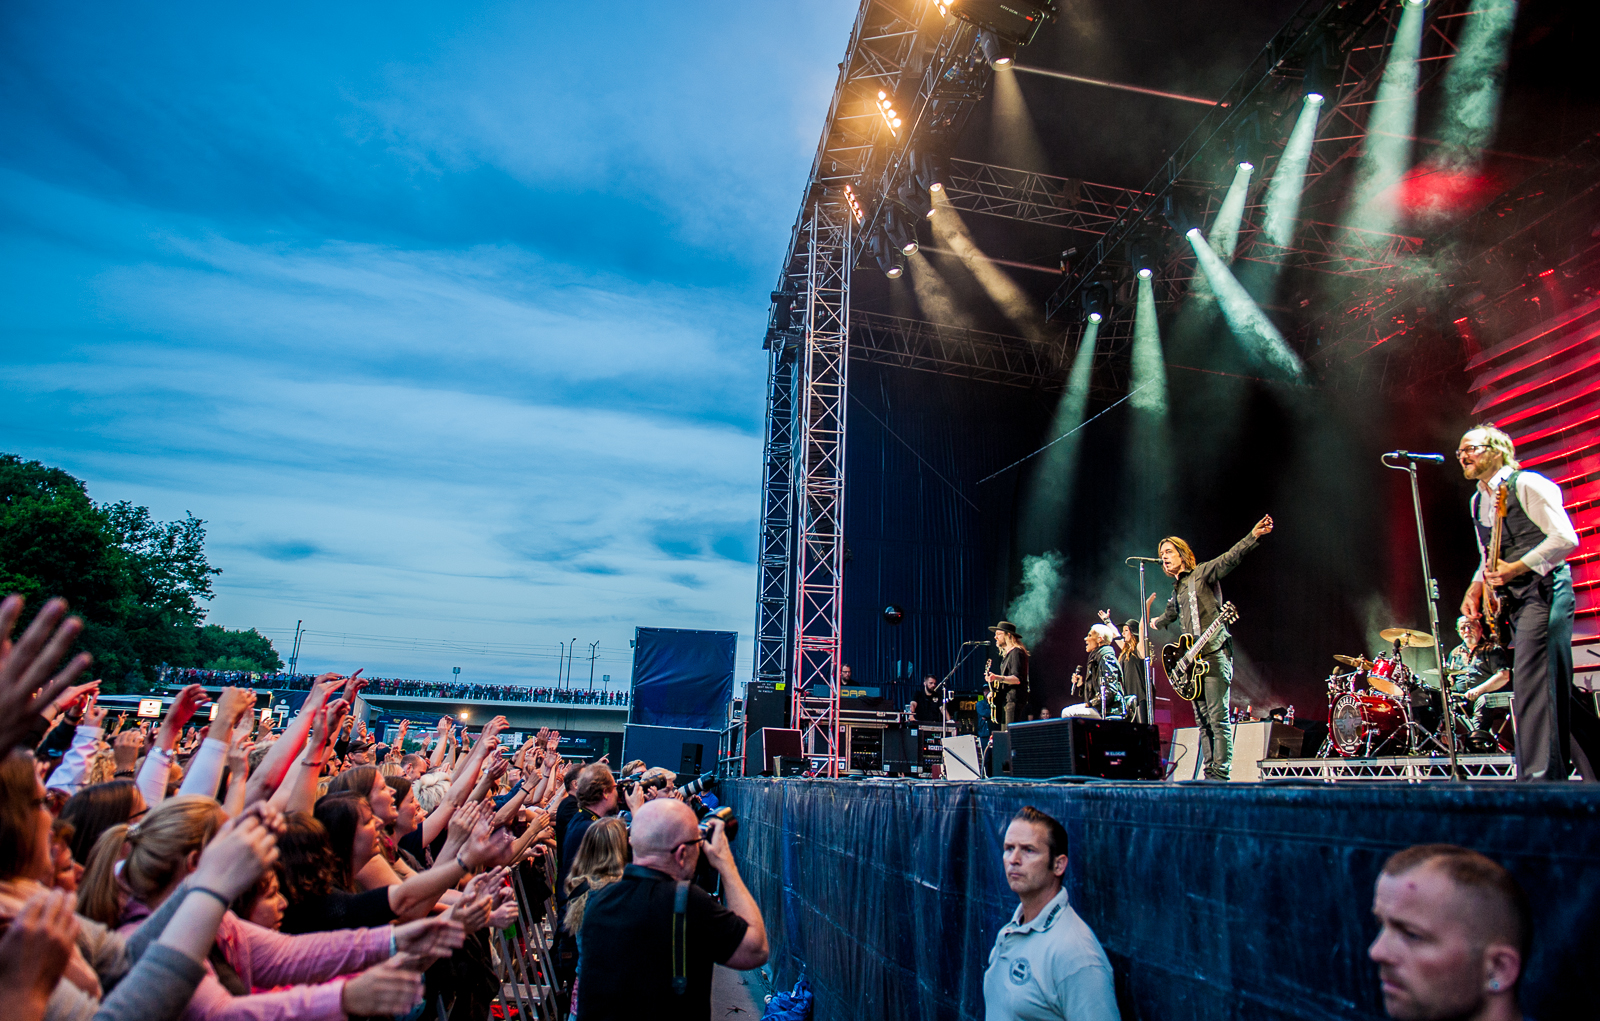 Roxette in Dresden 2015, photo by Kai-Uwe Heinze for The Daily Roxette